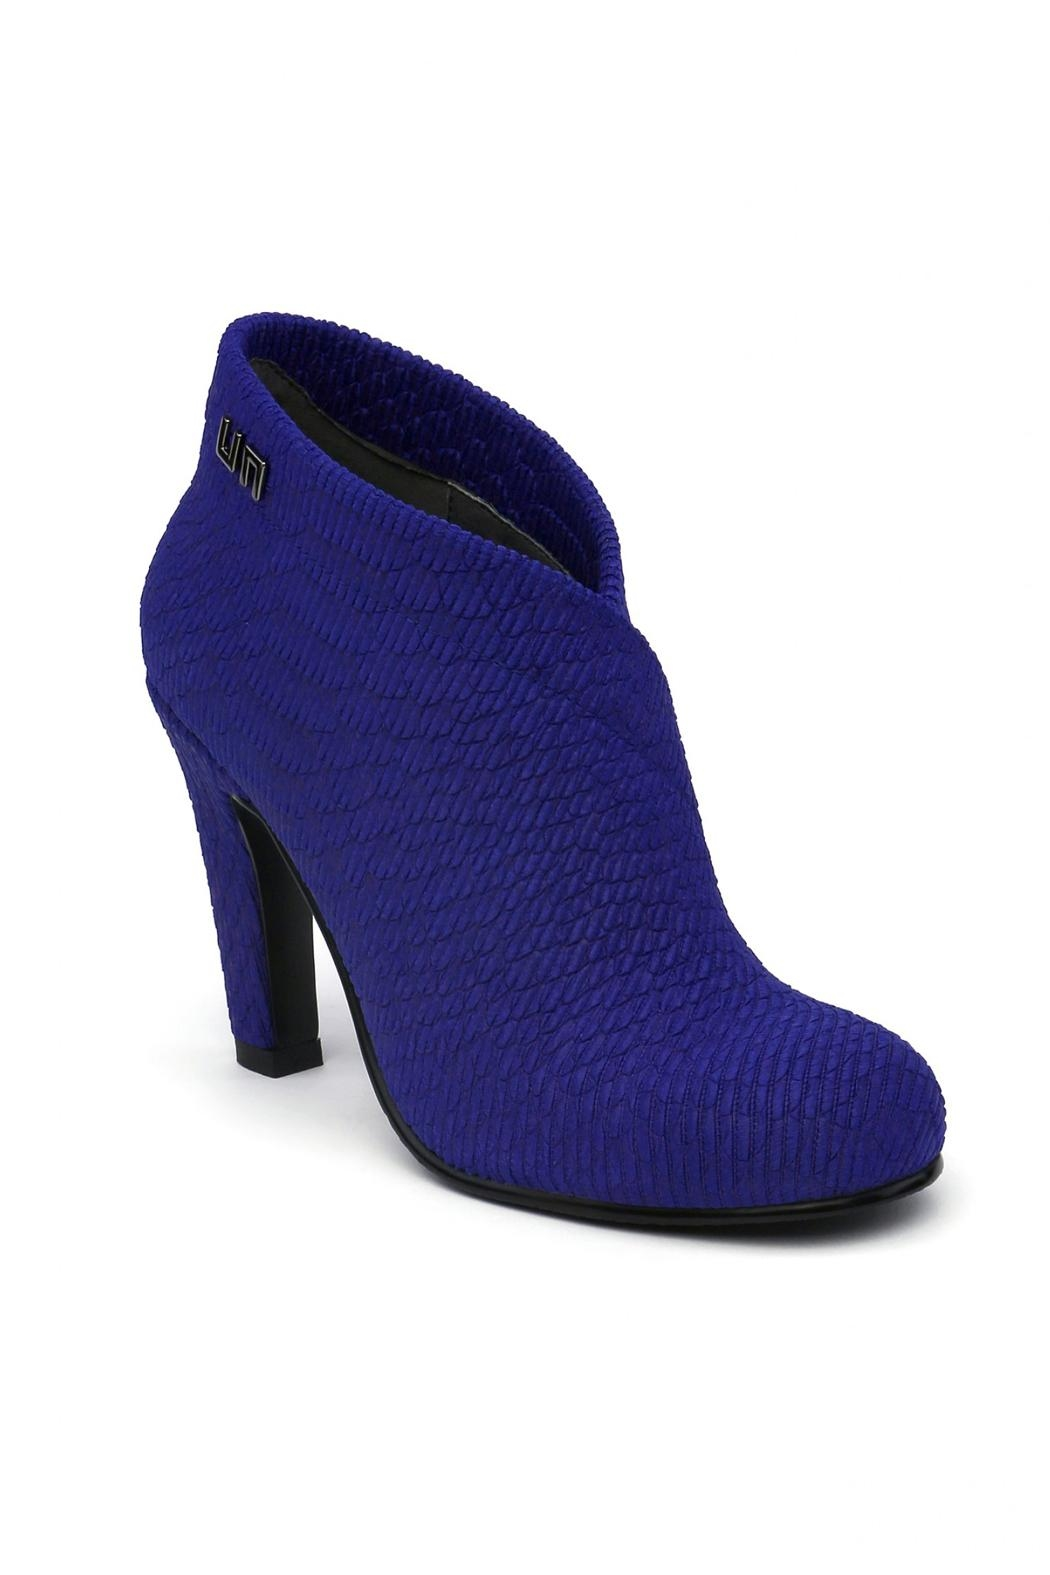 United Nude Fold-Hi Booties - Side Cropped Image